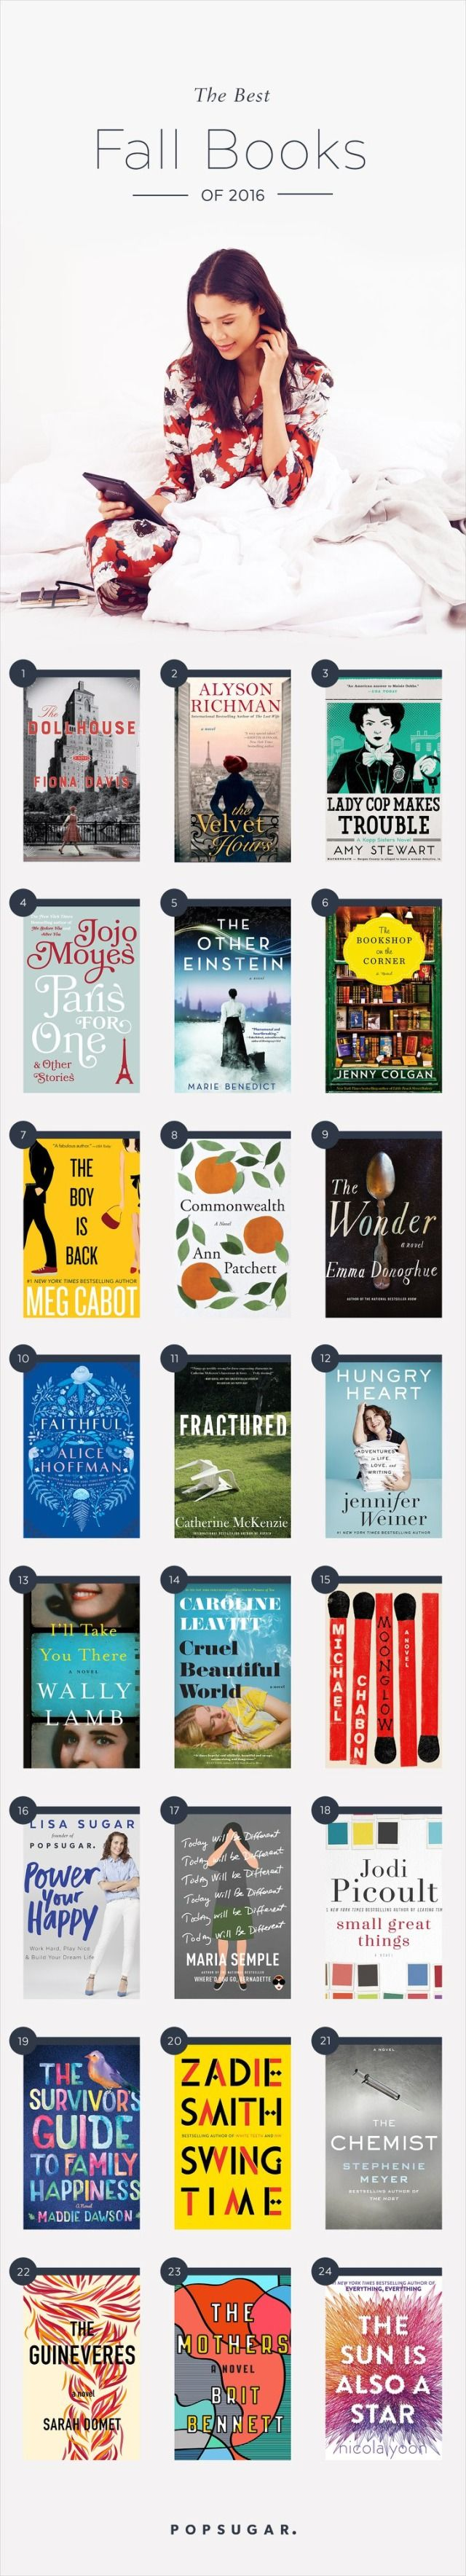 The 25 books that are perfect for cozying up with this fall